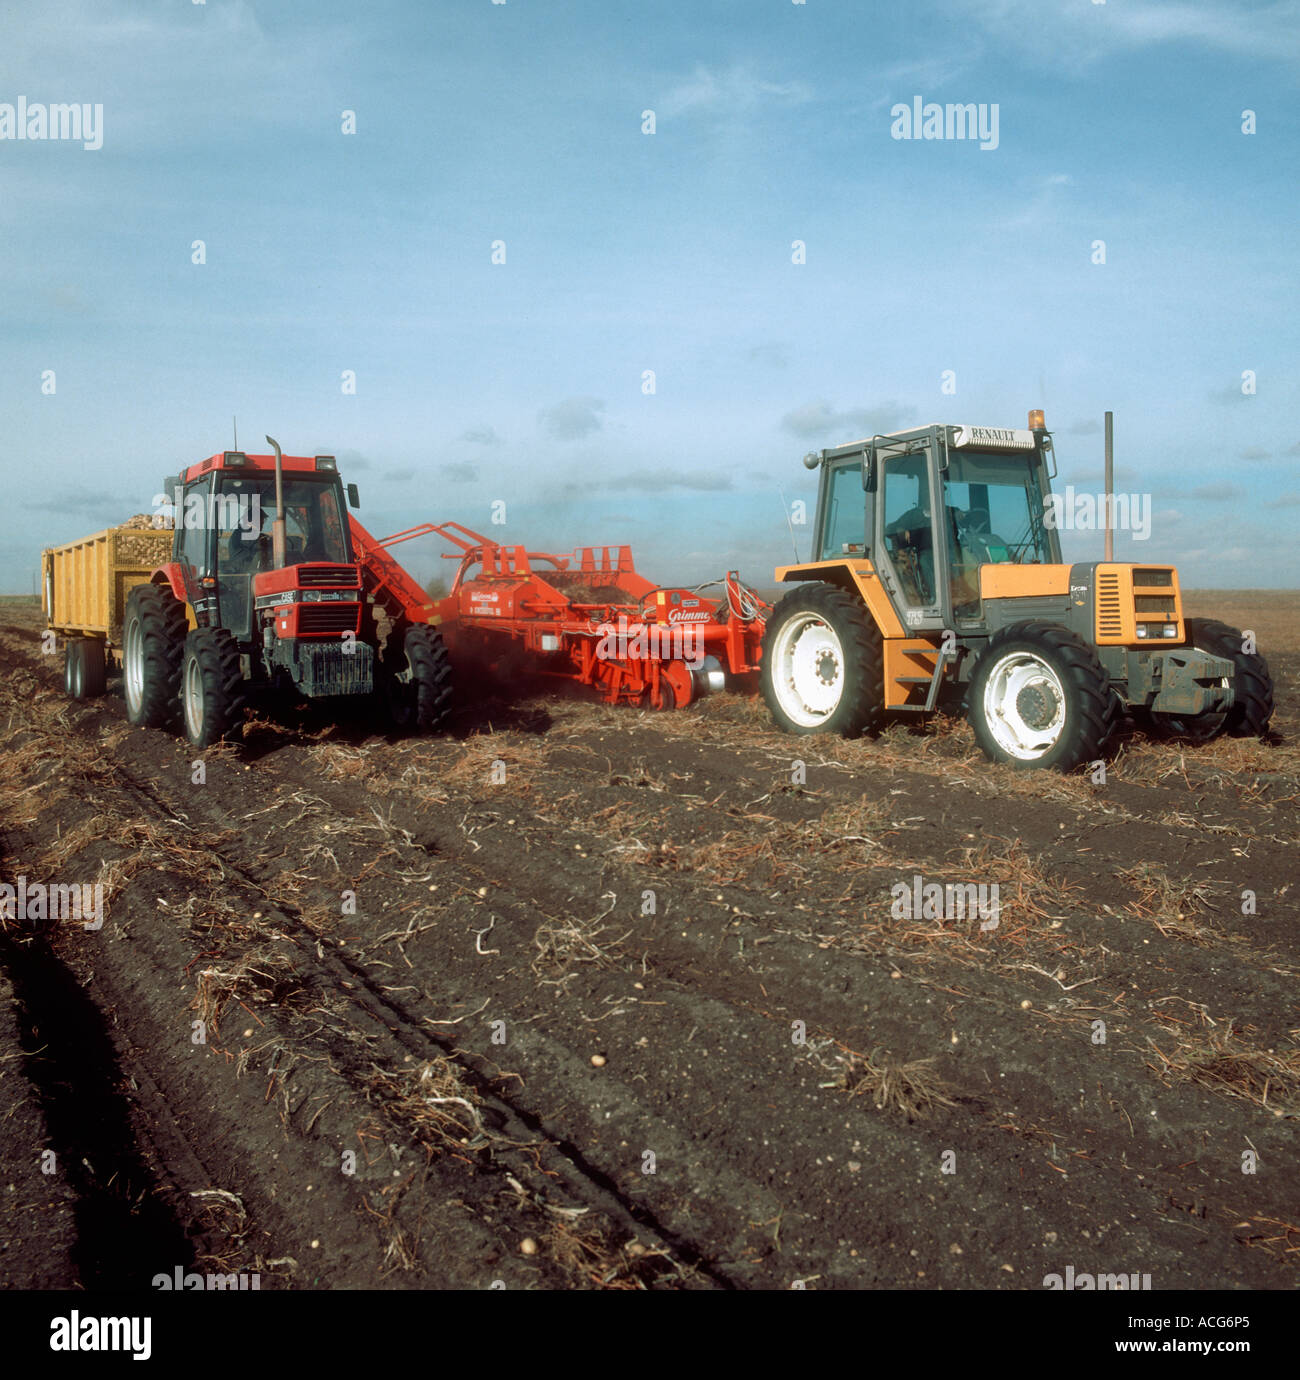 Renault tractor and Grimme harvester elevating a Fenland potato crop - Stock Image